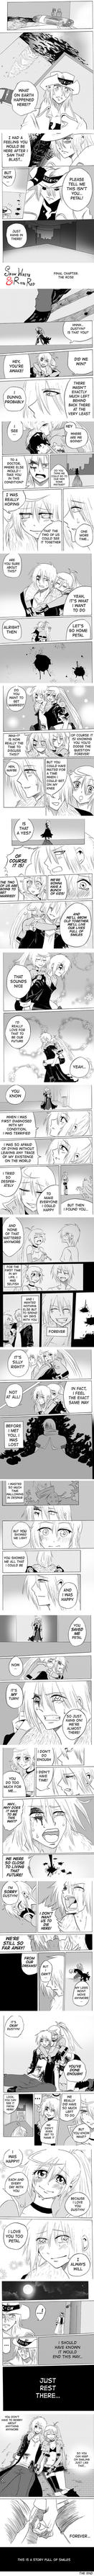 Snow White and Rose Red FINAL CHAPTER by DannyPhoenix0013